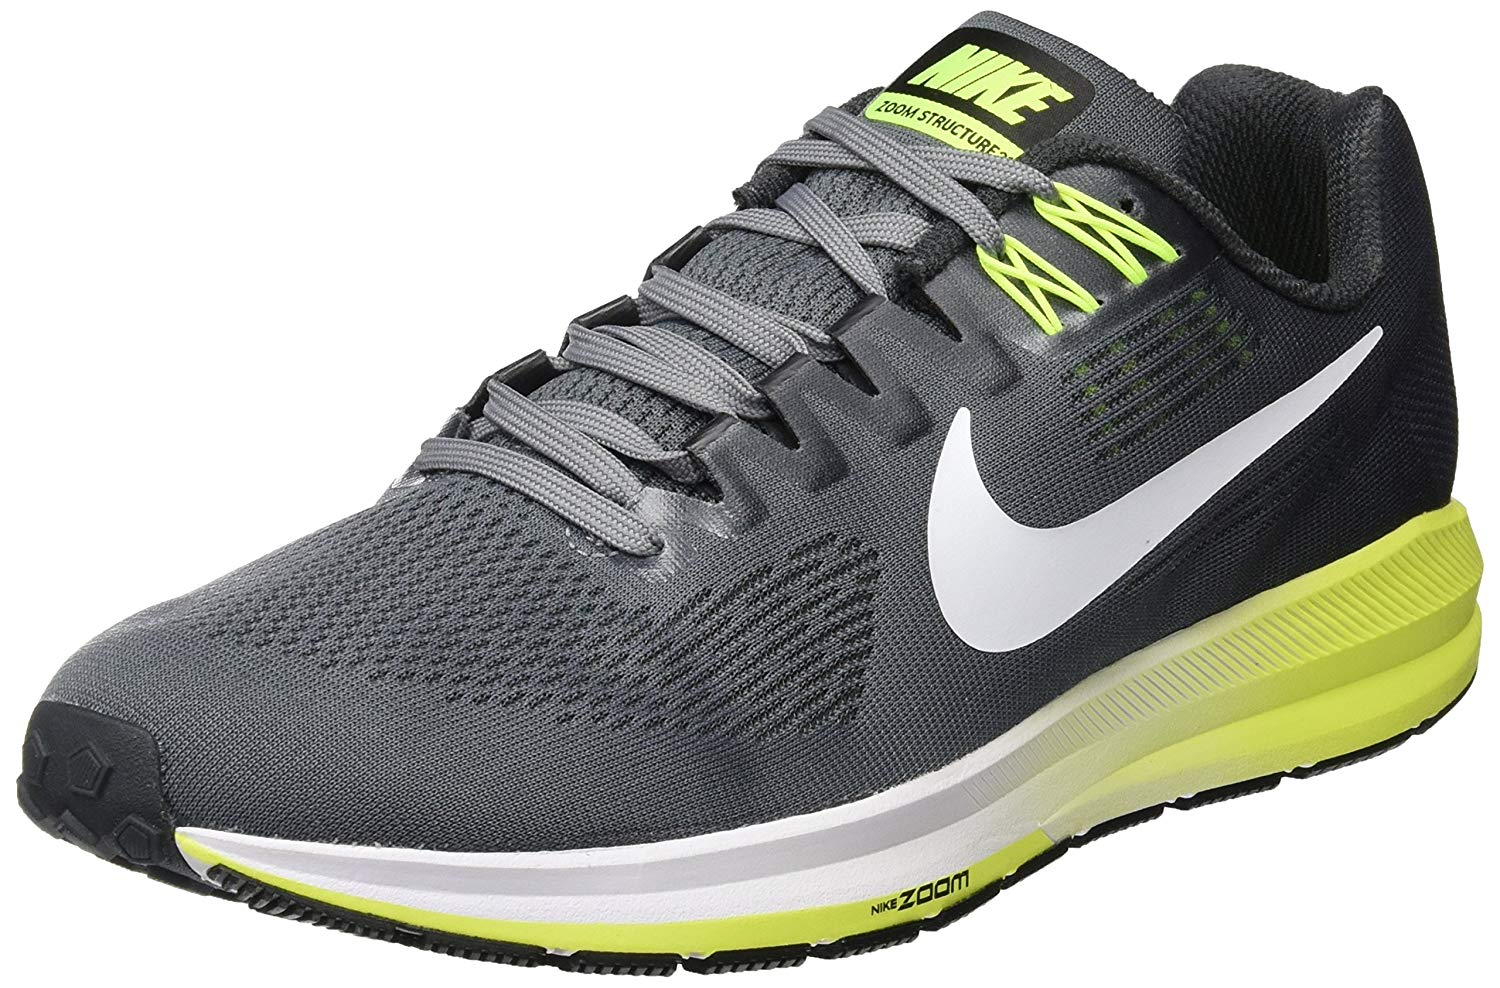 Nike Air Zoom Structure 21 Reviewed for